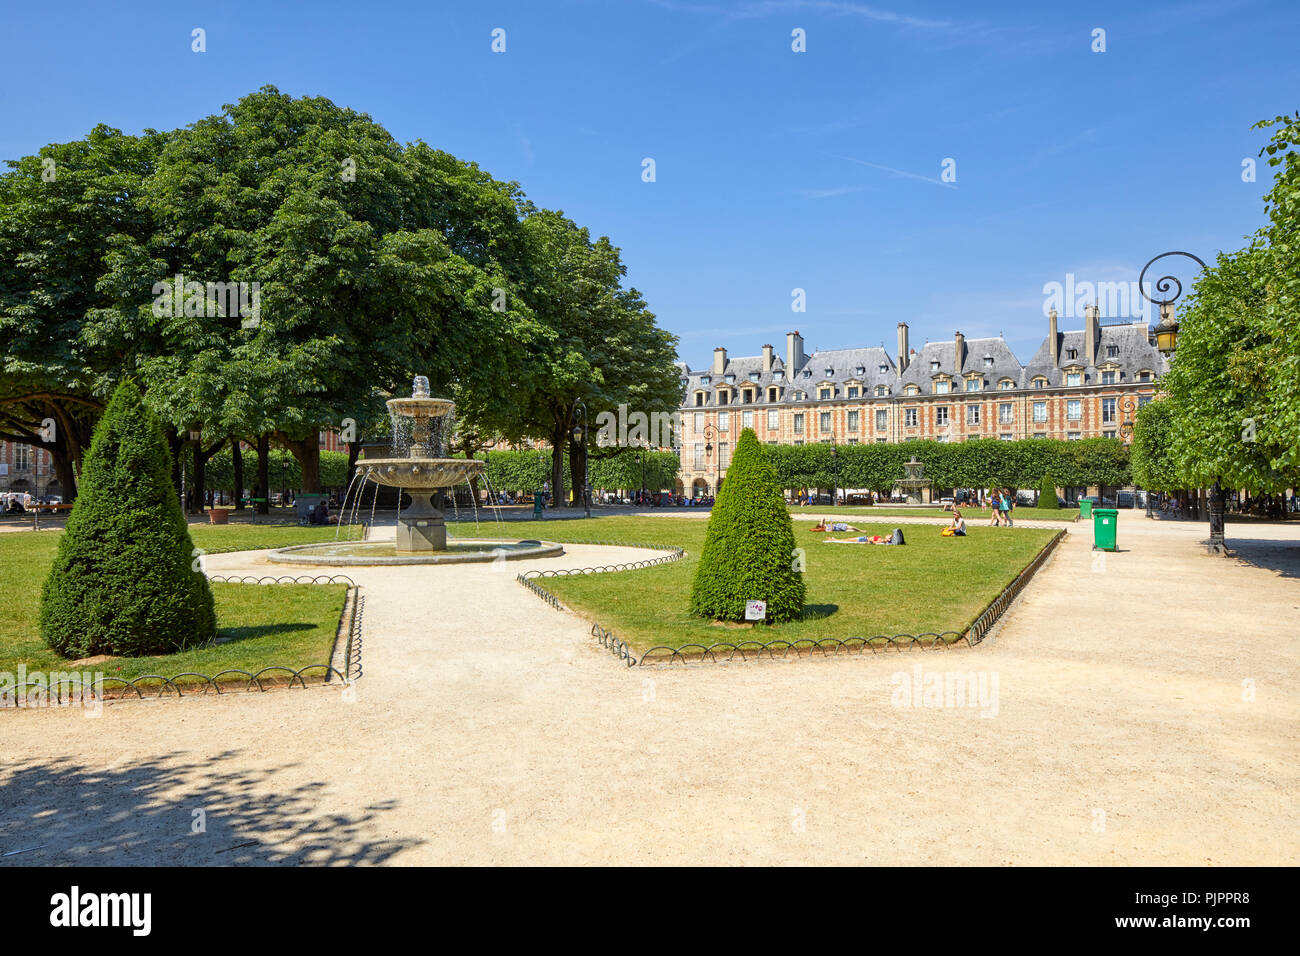 Northeastern Fountain by Jean-Pierre Cortot in Place des Vosges, Paris, France, Europe Stock Photo